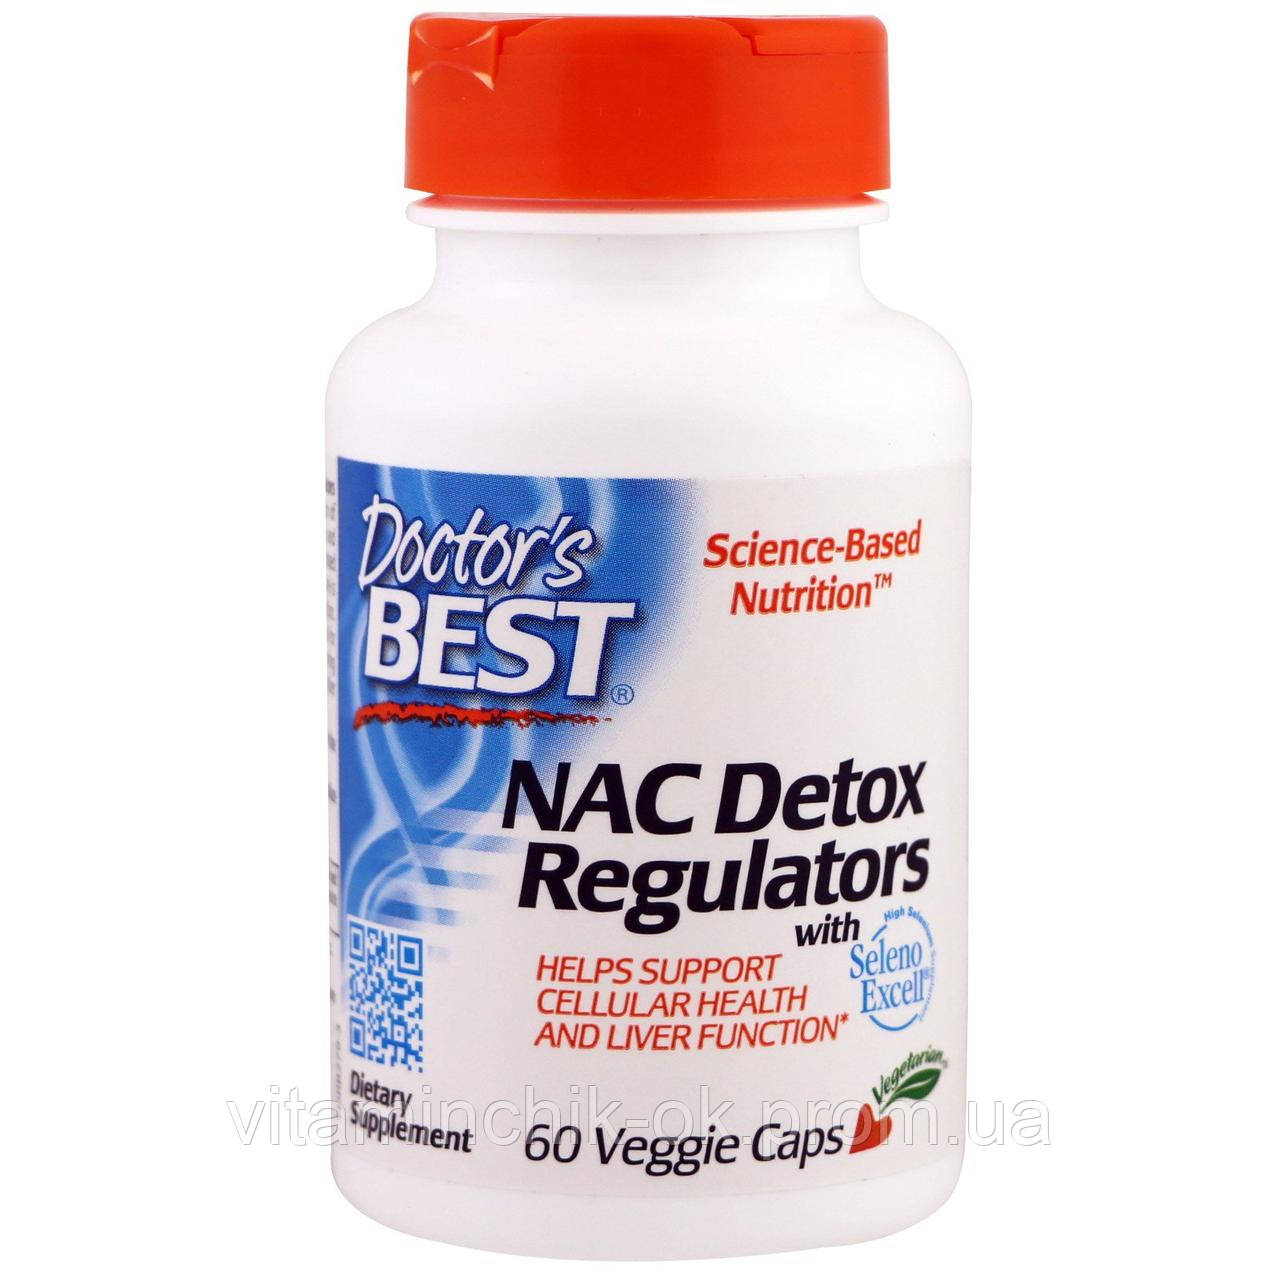 NAC (N-Ацетил-L-Цистеин) Детоксичные Регуляторы, Seleno Excell, Doctor's Best, 60 гелевых капсул